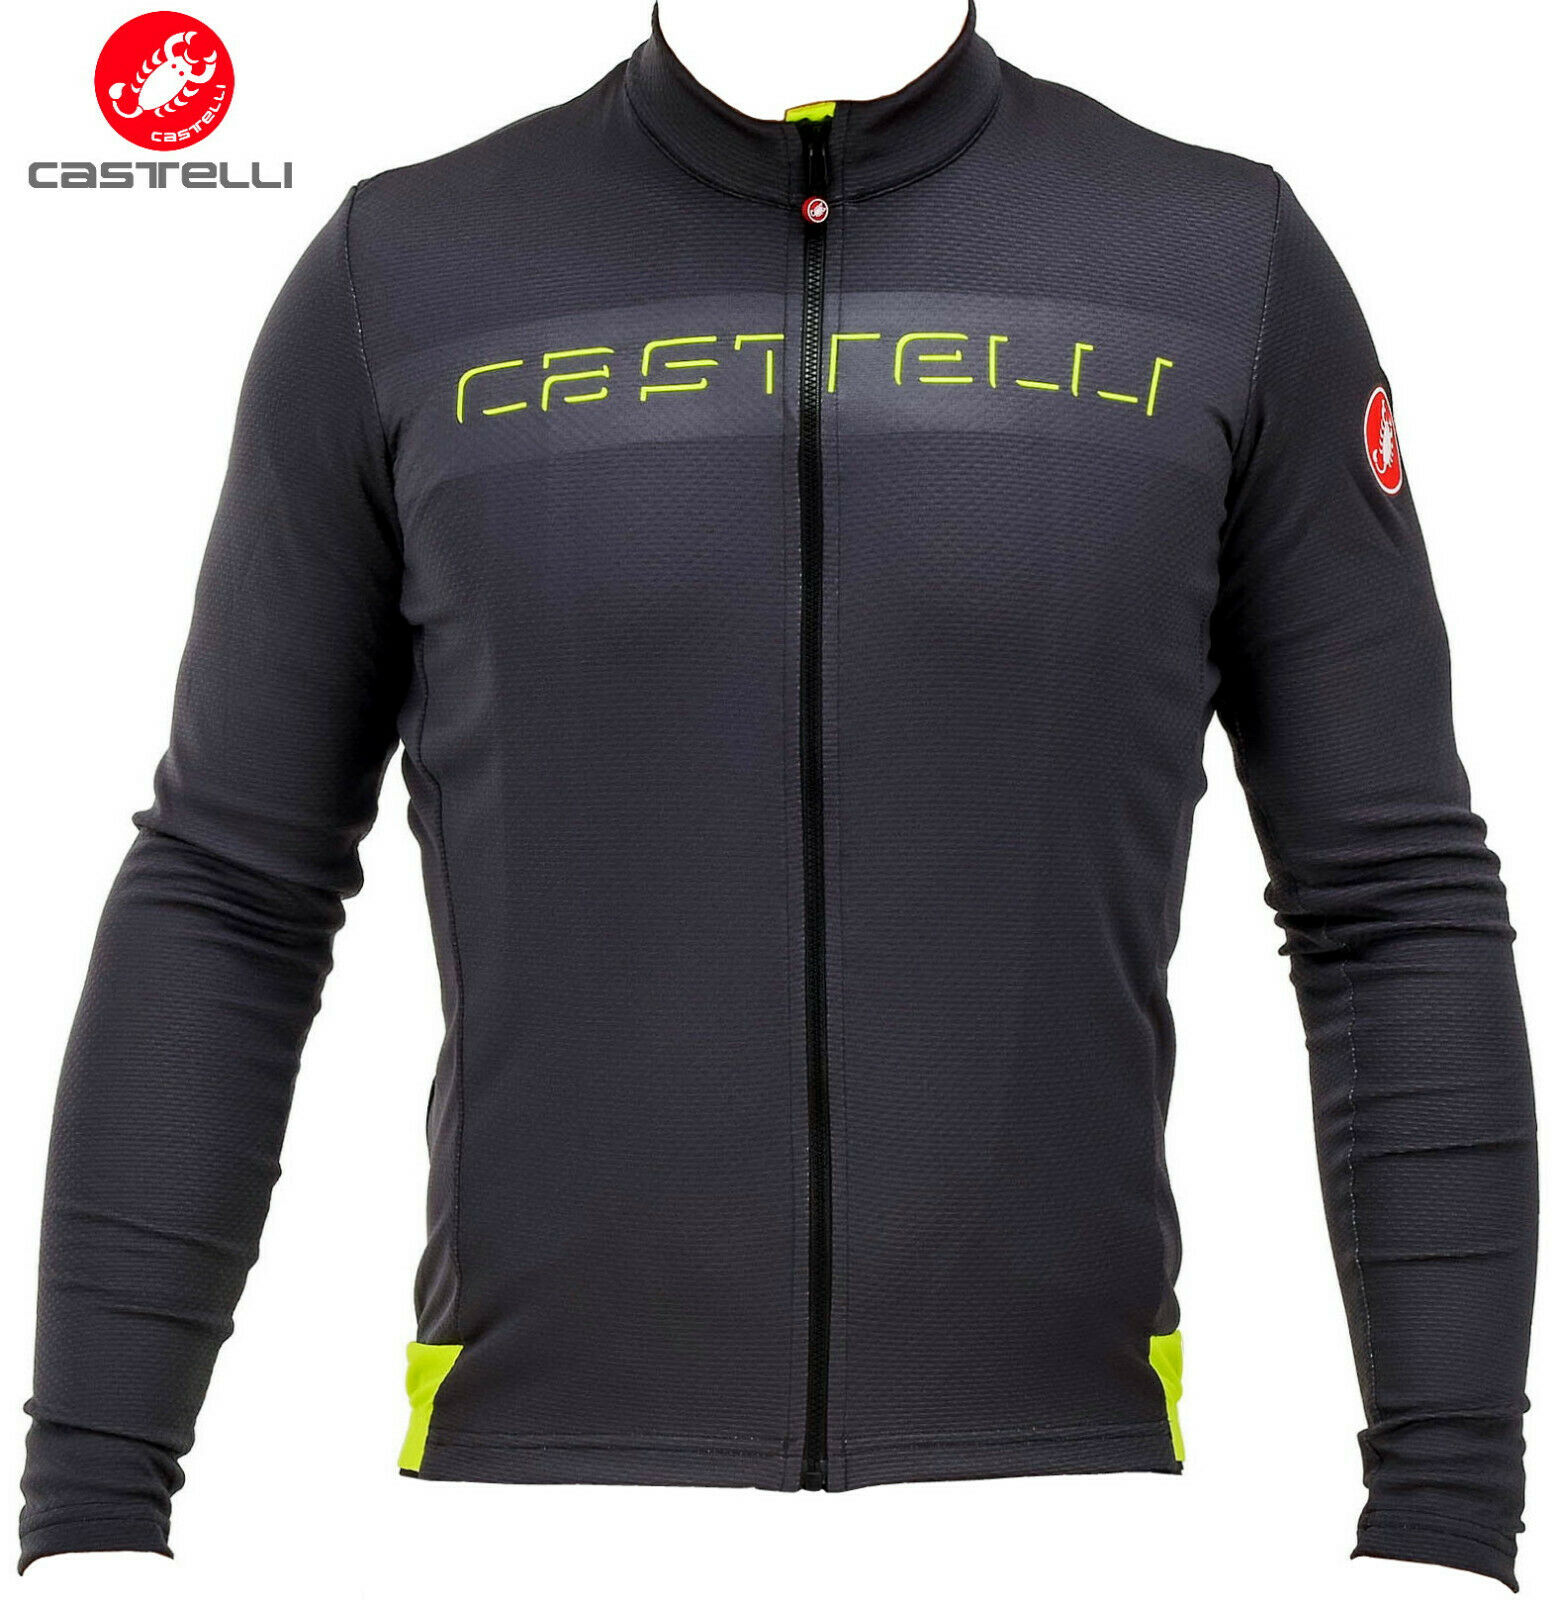 Maillot CASTELLI PROLOGO V uomoches lungoues     M 446